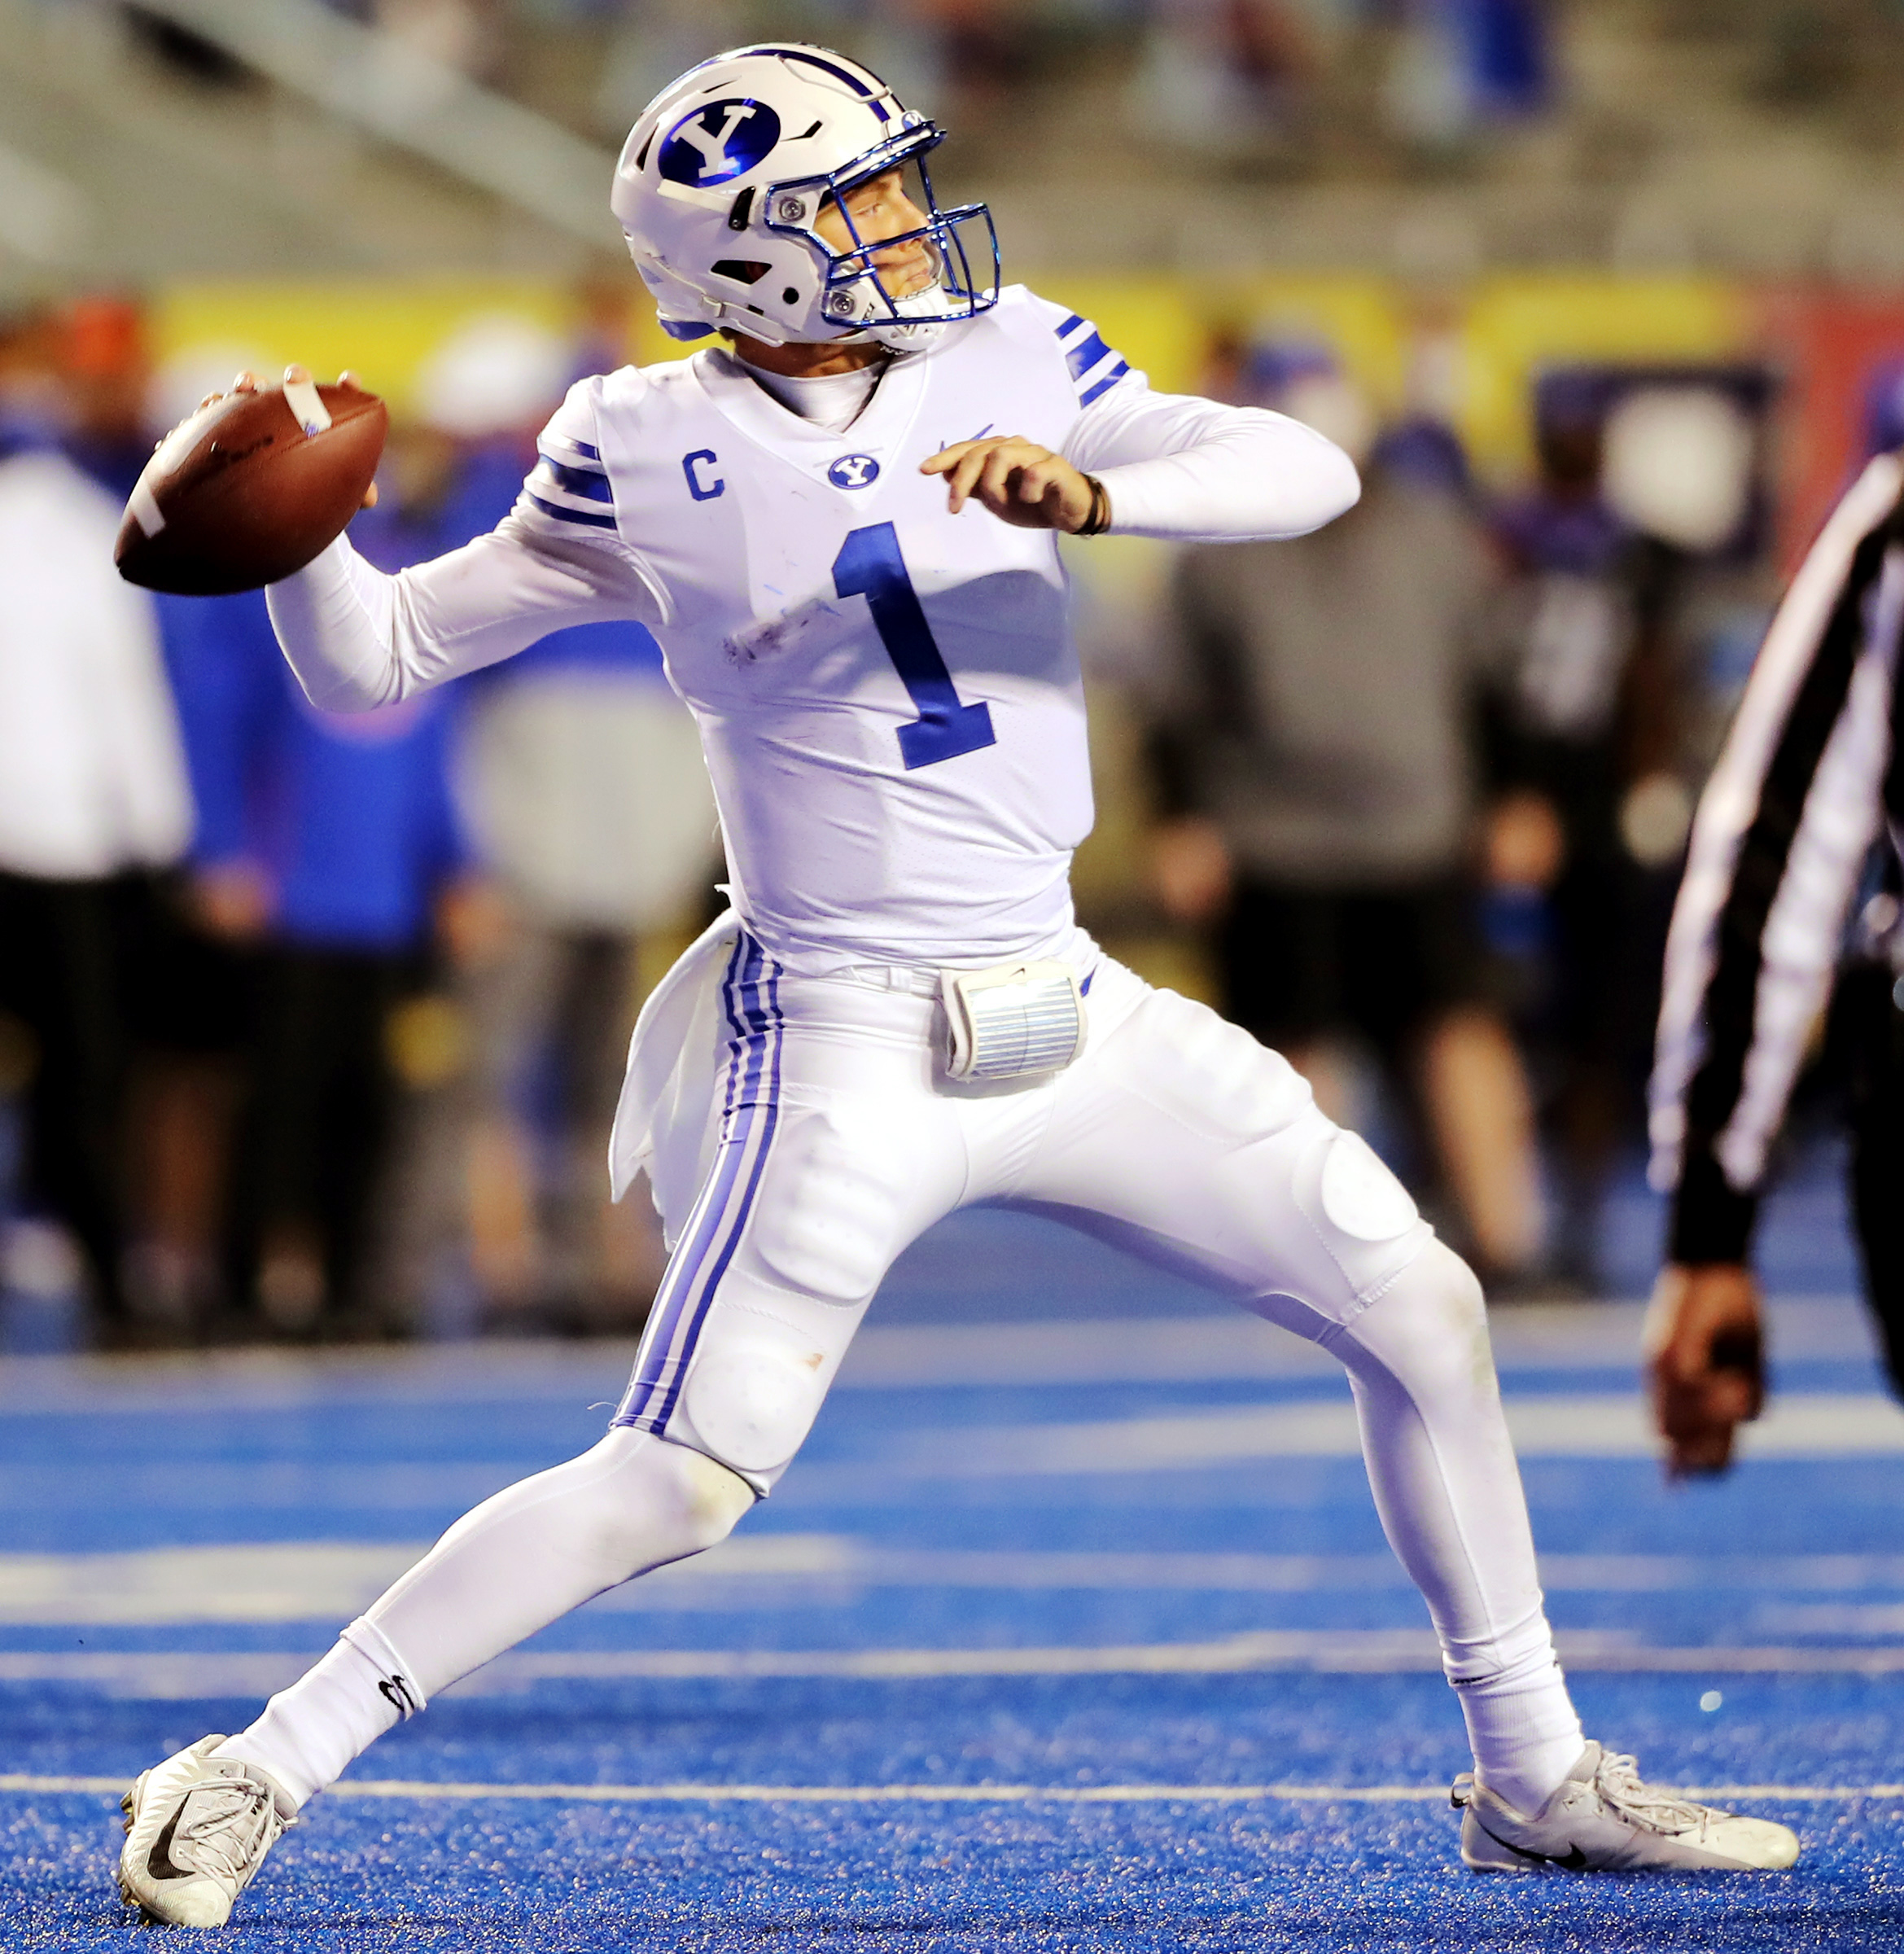 杨百翰 Cougars quarterback Zach Wilson (1) loads up for a long pass as BYU 和 Boise State play a college football game at Albertsons Stadium in Boise on Friday, Nov. 6, 2020. BYU won 51-17.